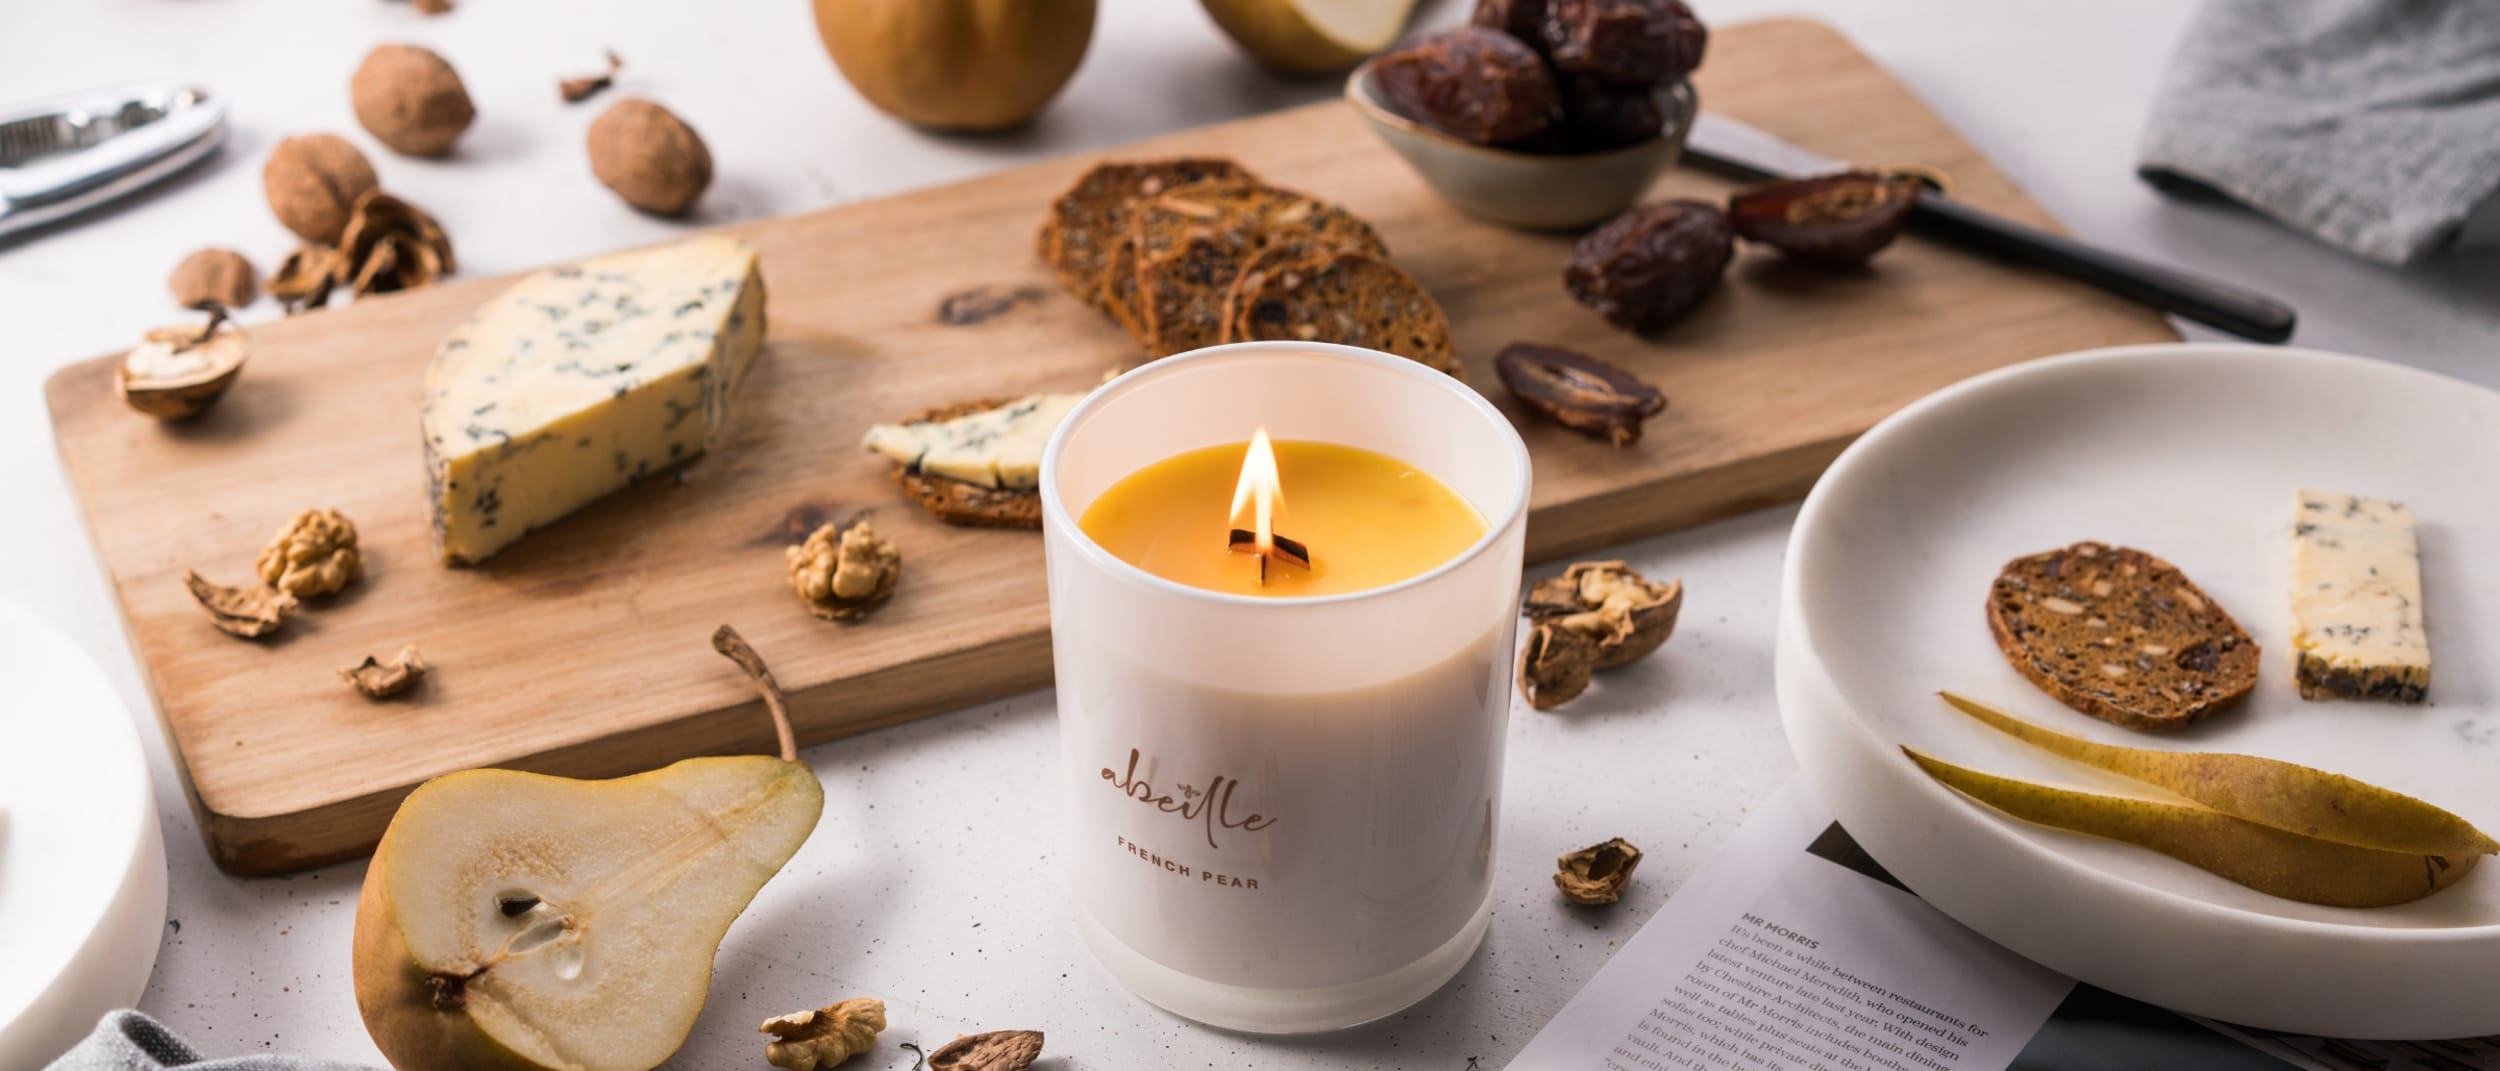 Life Pharmacy: Experience Abeille, crafted by nature